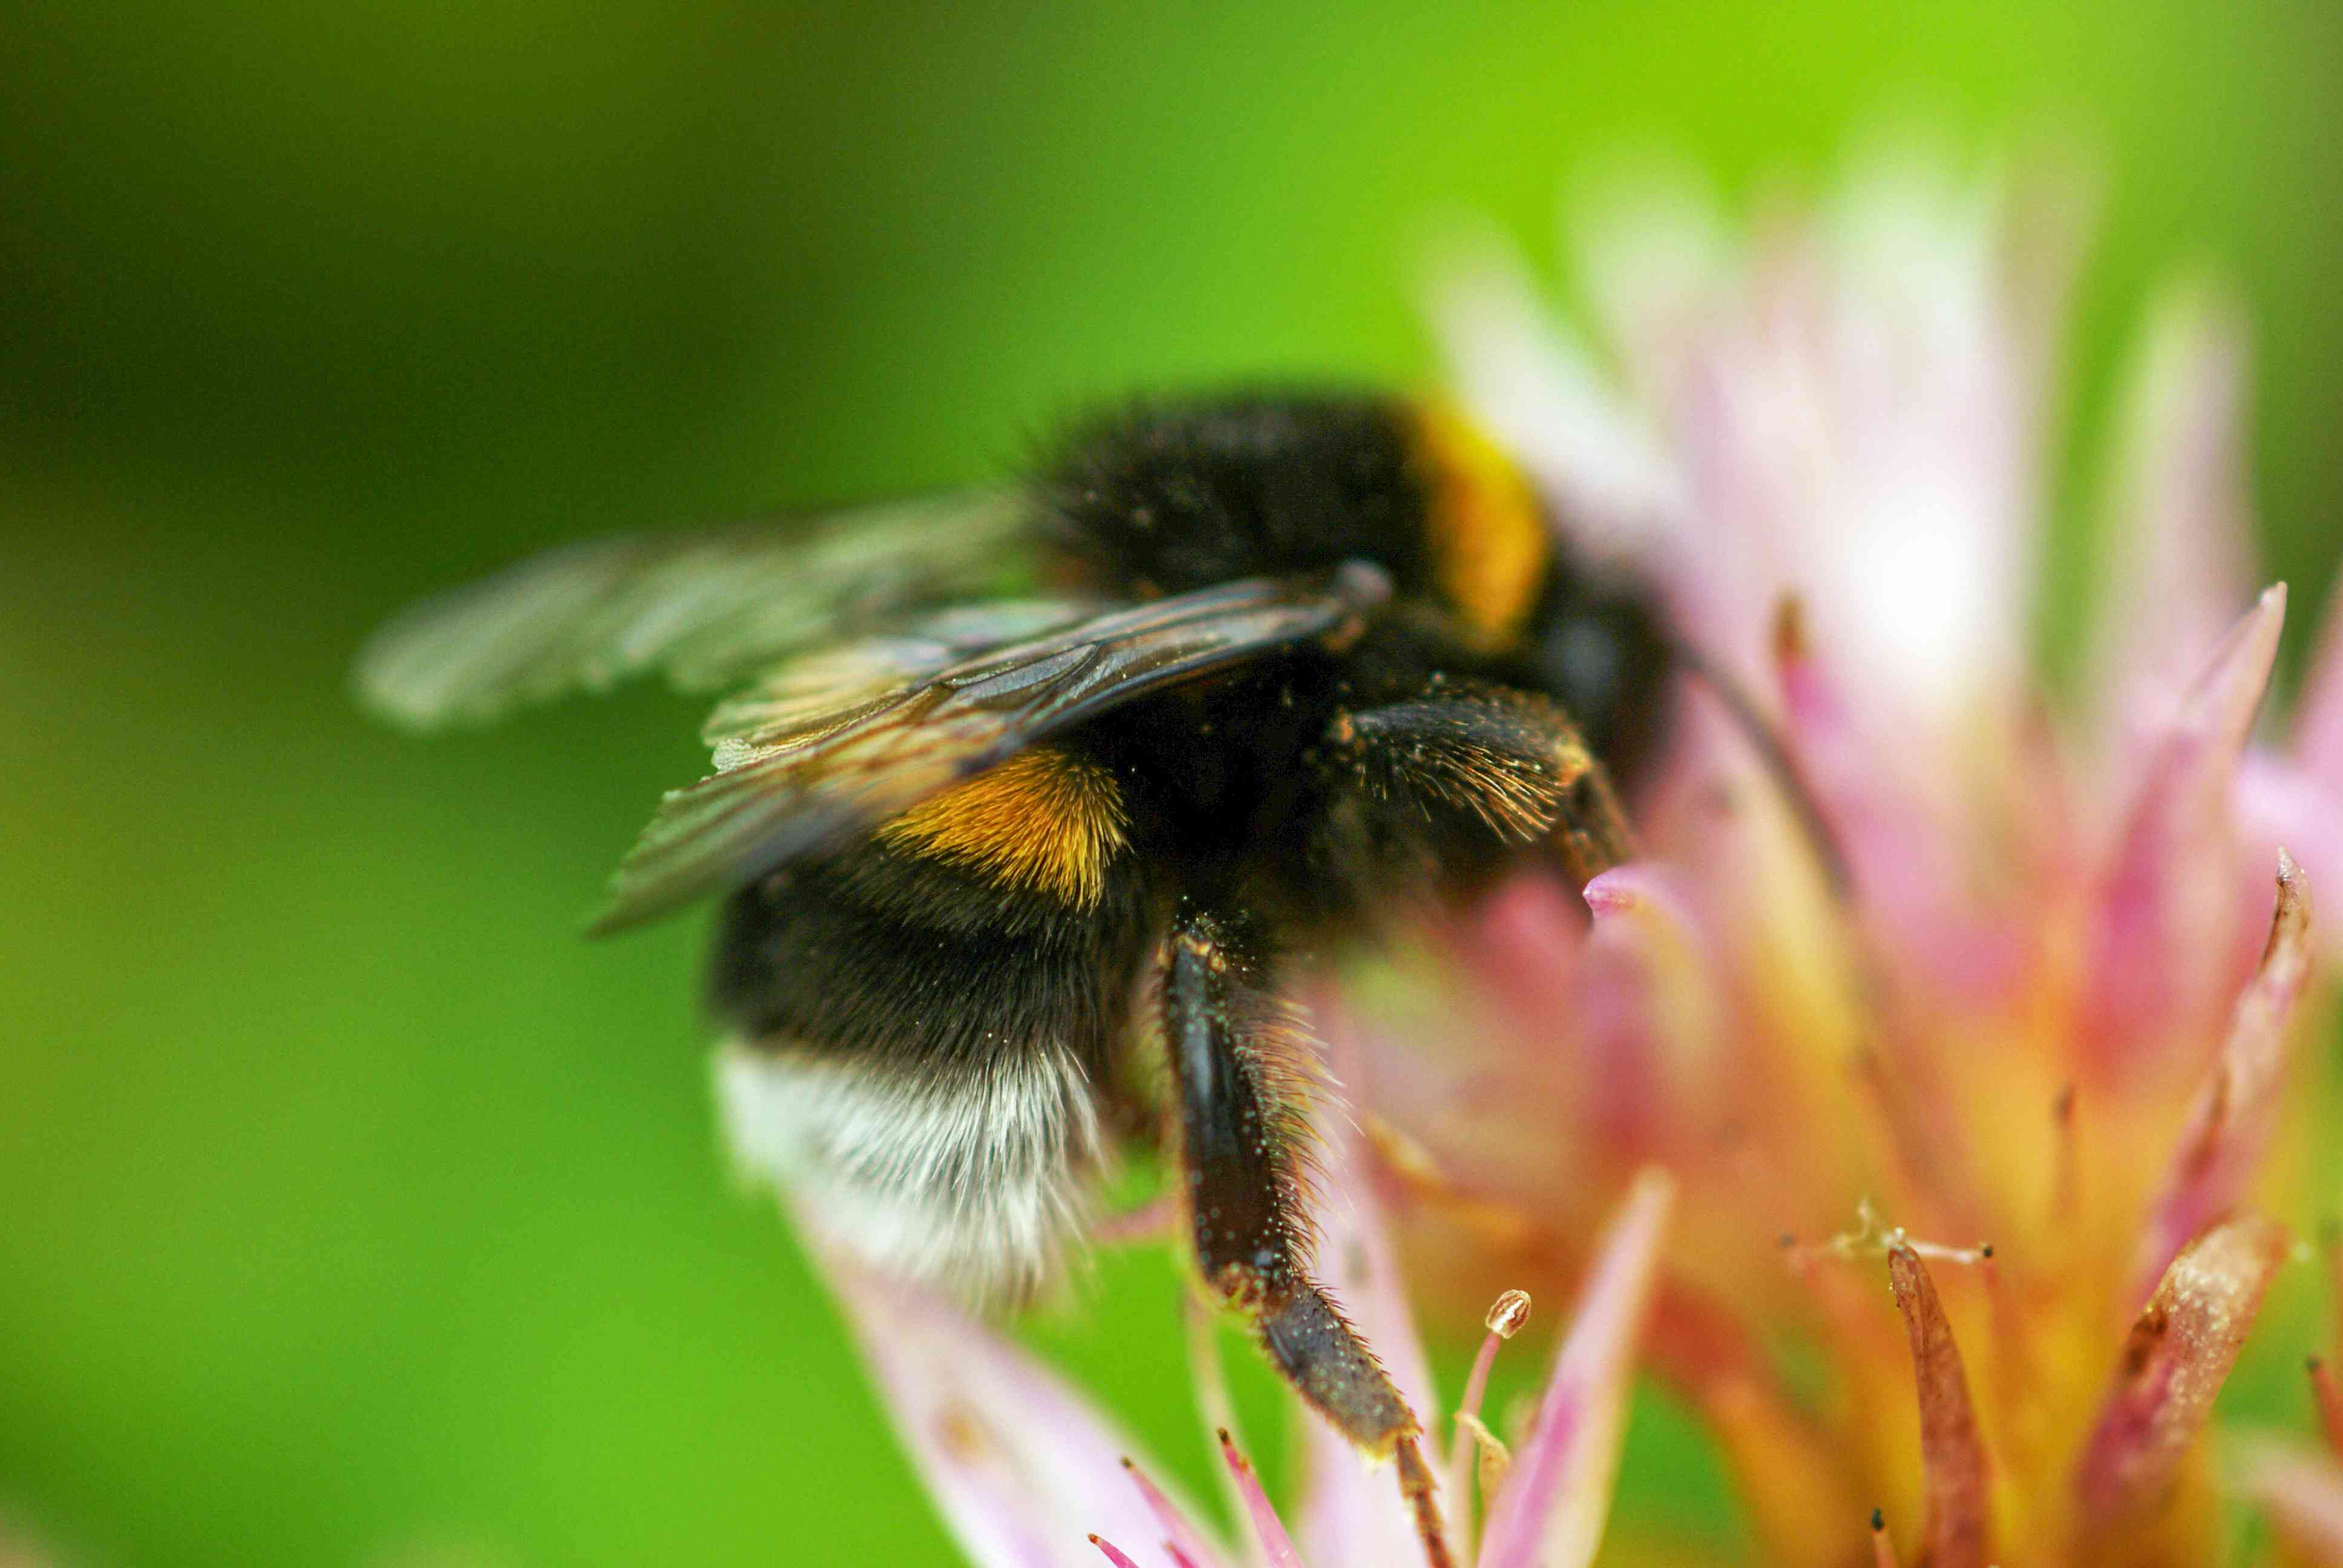 A bumblebee collecting pollen from a flower.